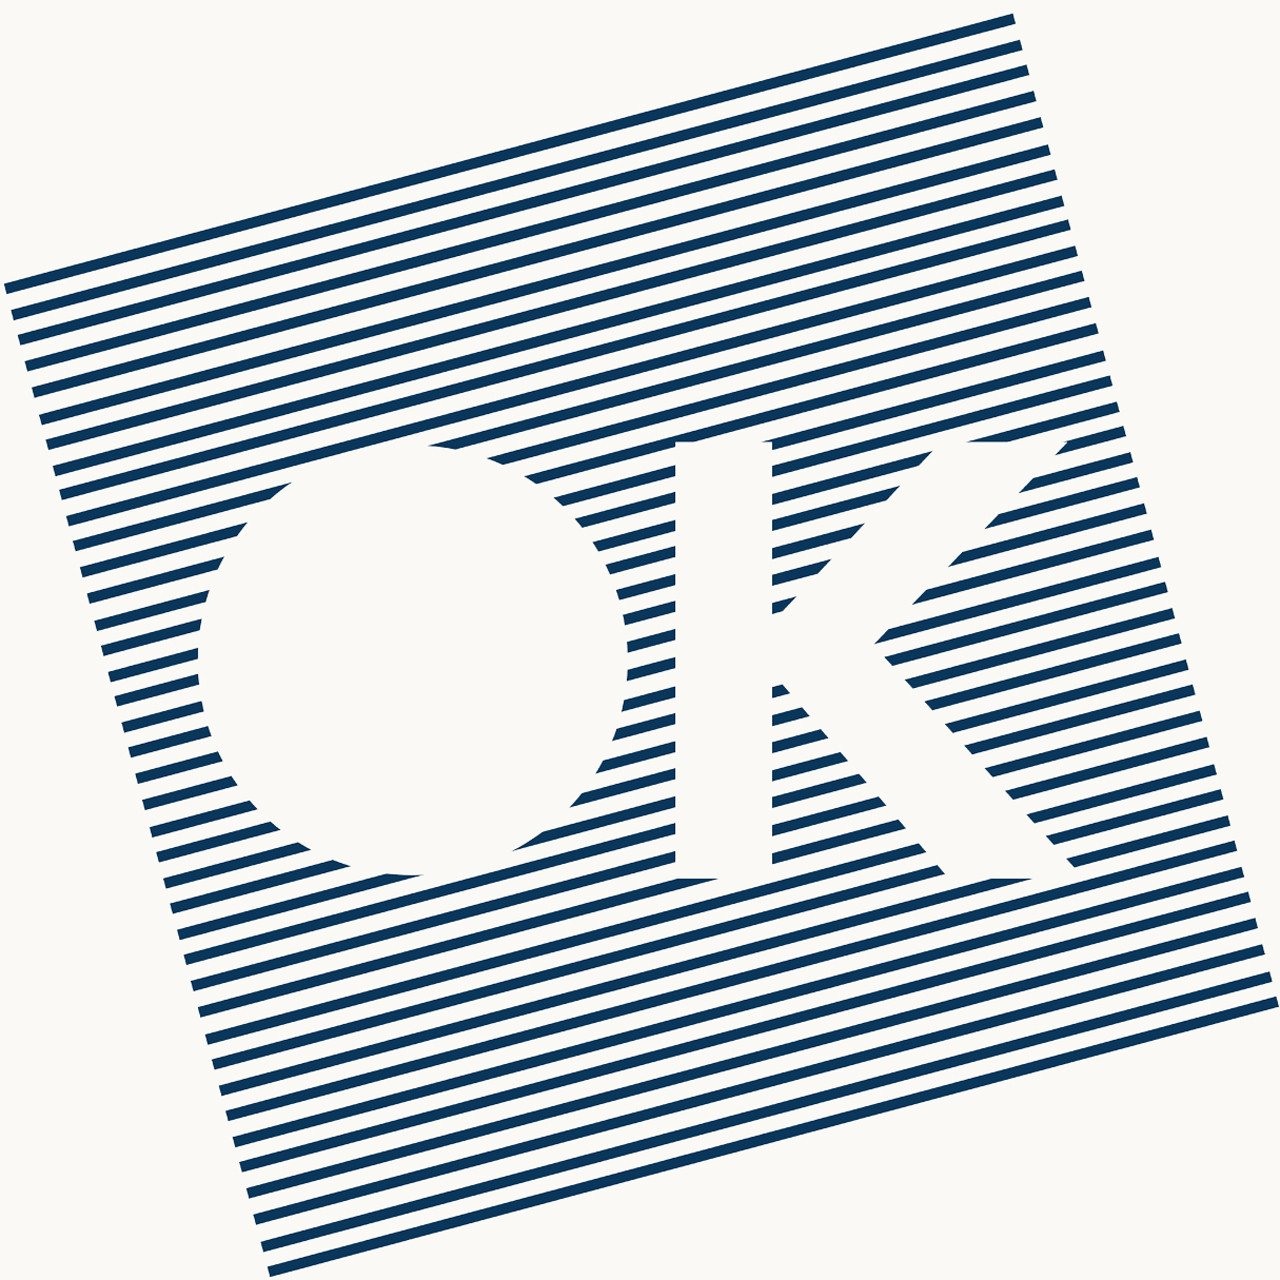 Lucy Gough for Soma Gallery 'OK' , Limited Edition of 50 - £95